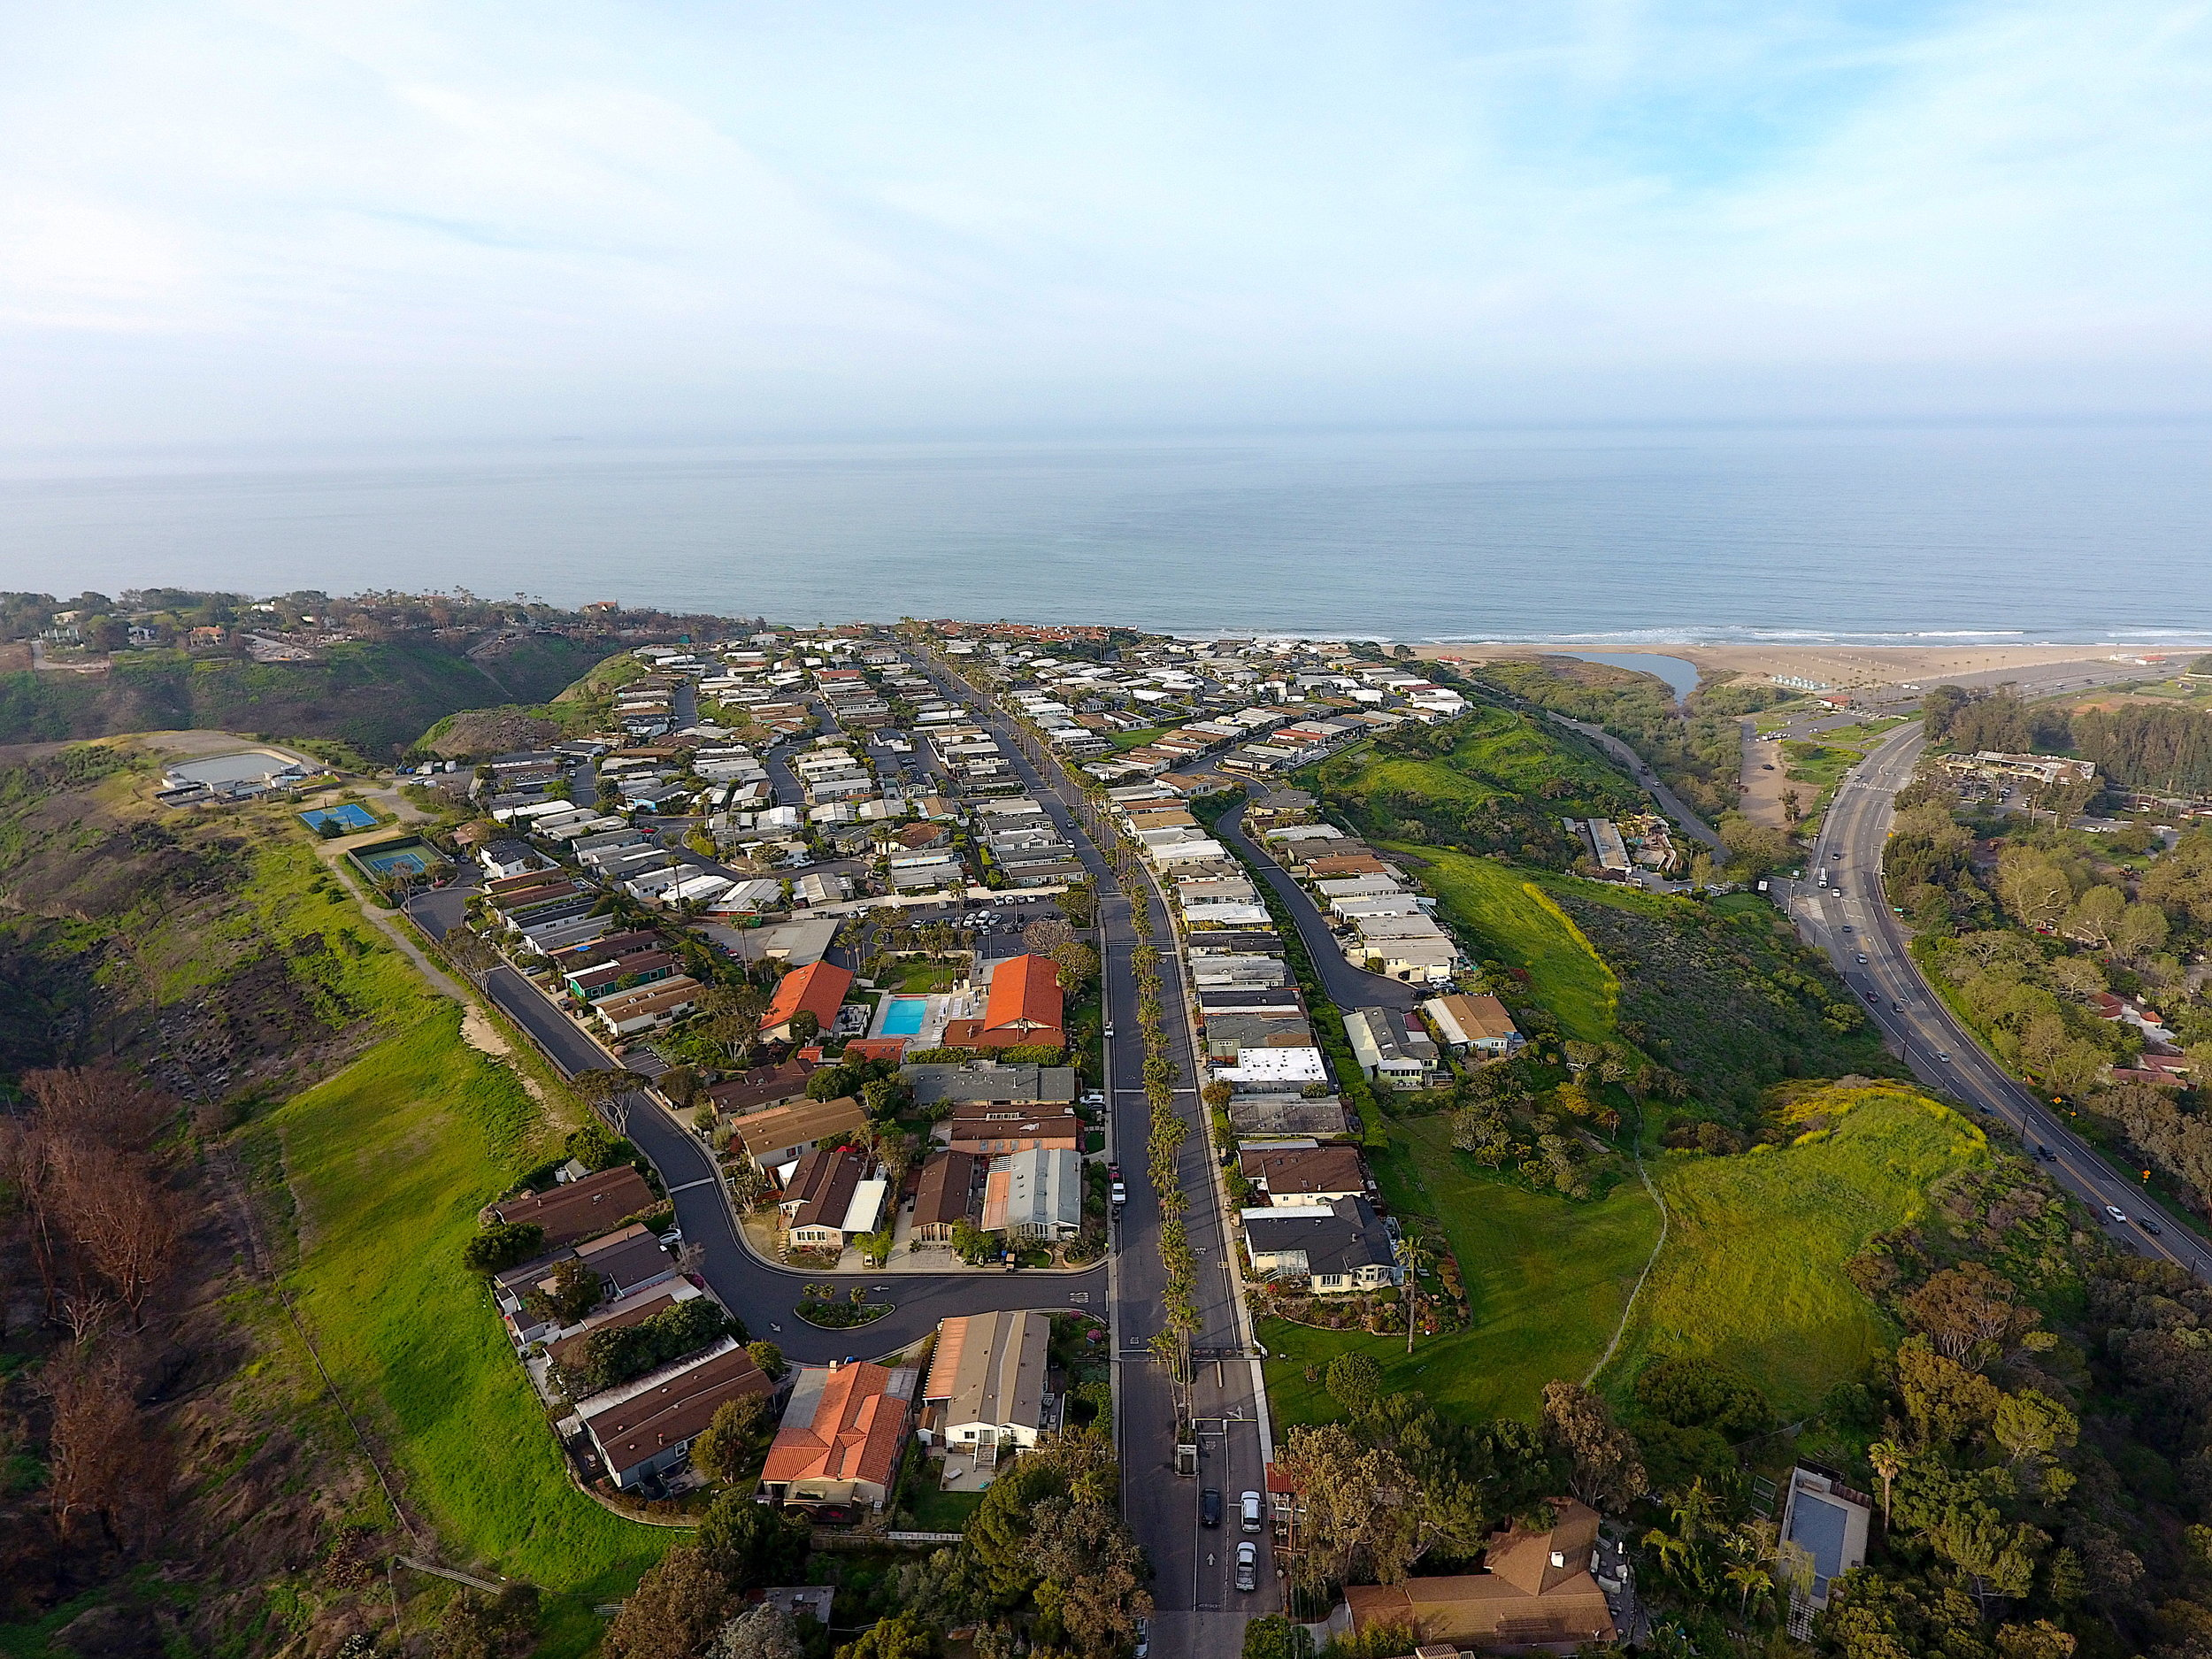 Opened in 1970, the Point Dume Club sits right next to the Point Dume Plaza. Many homes offer spectacular ocean views.